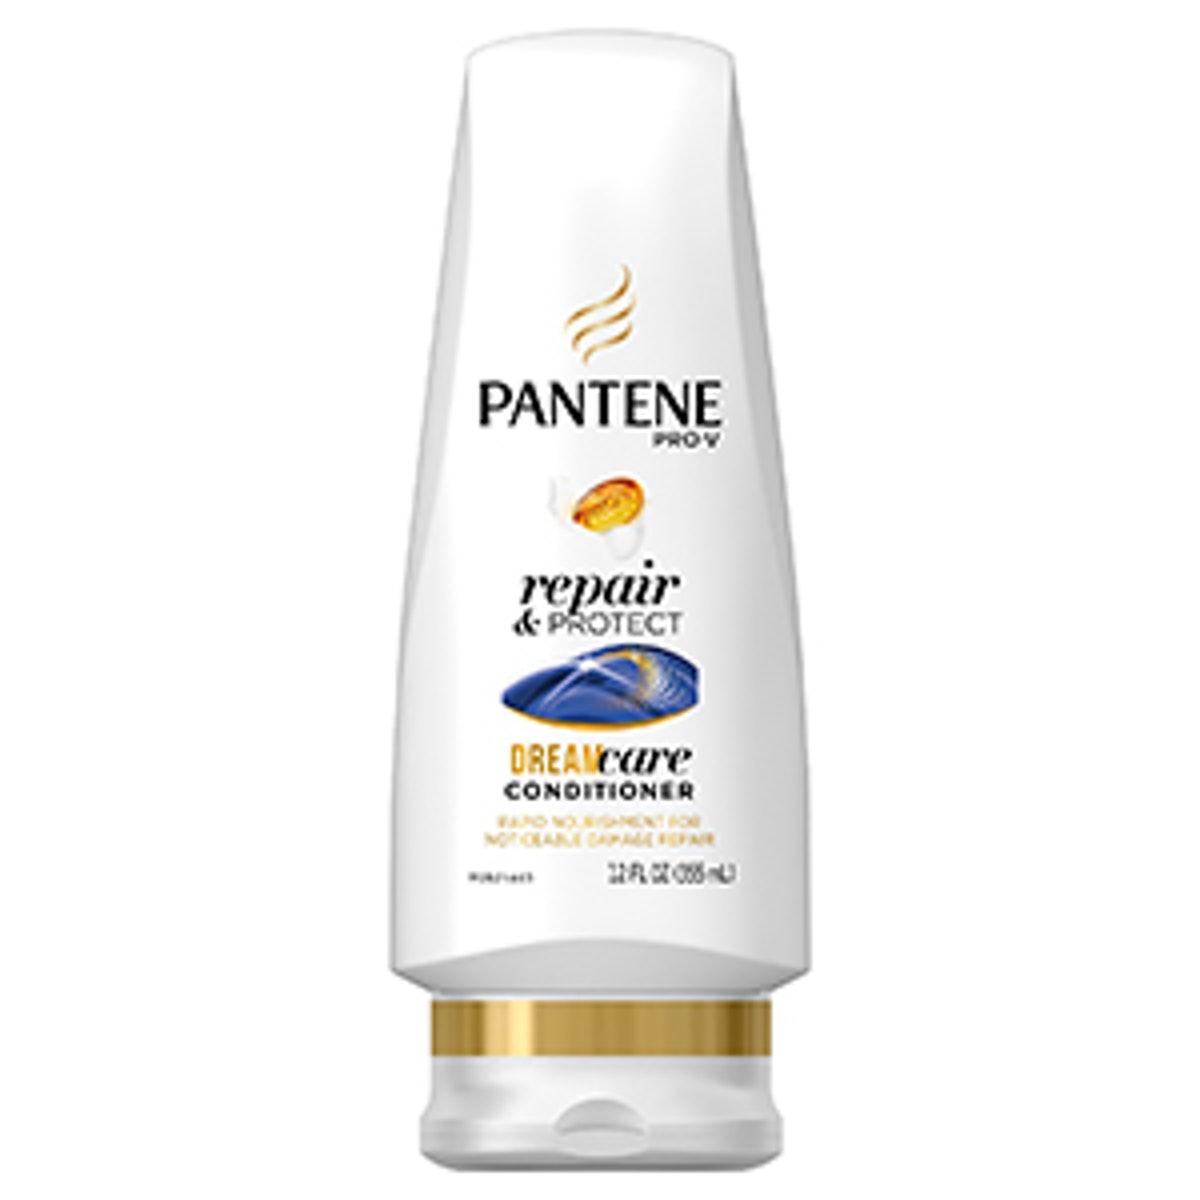 Pantene Pro-V Repair and Protect Conditioner